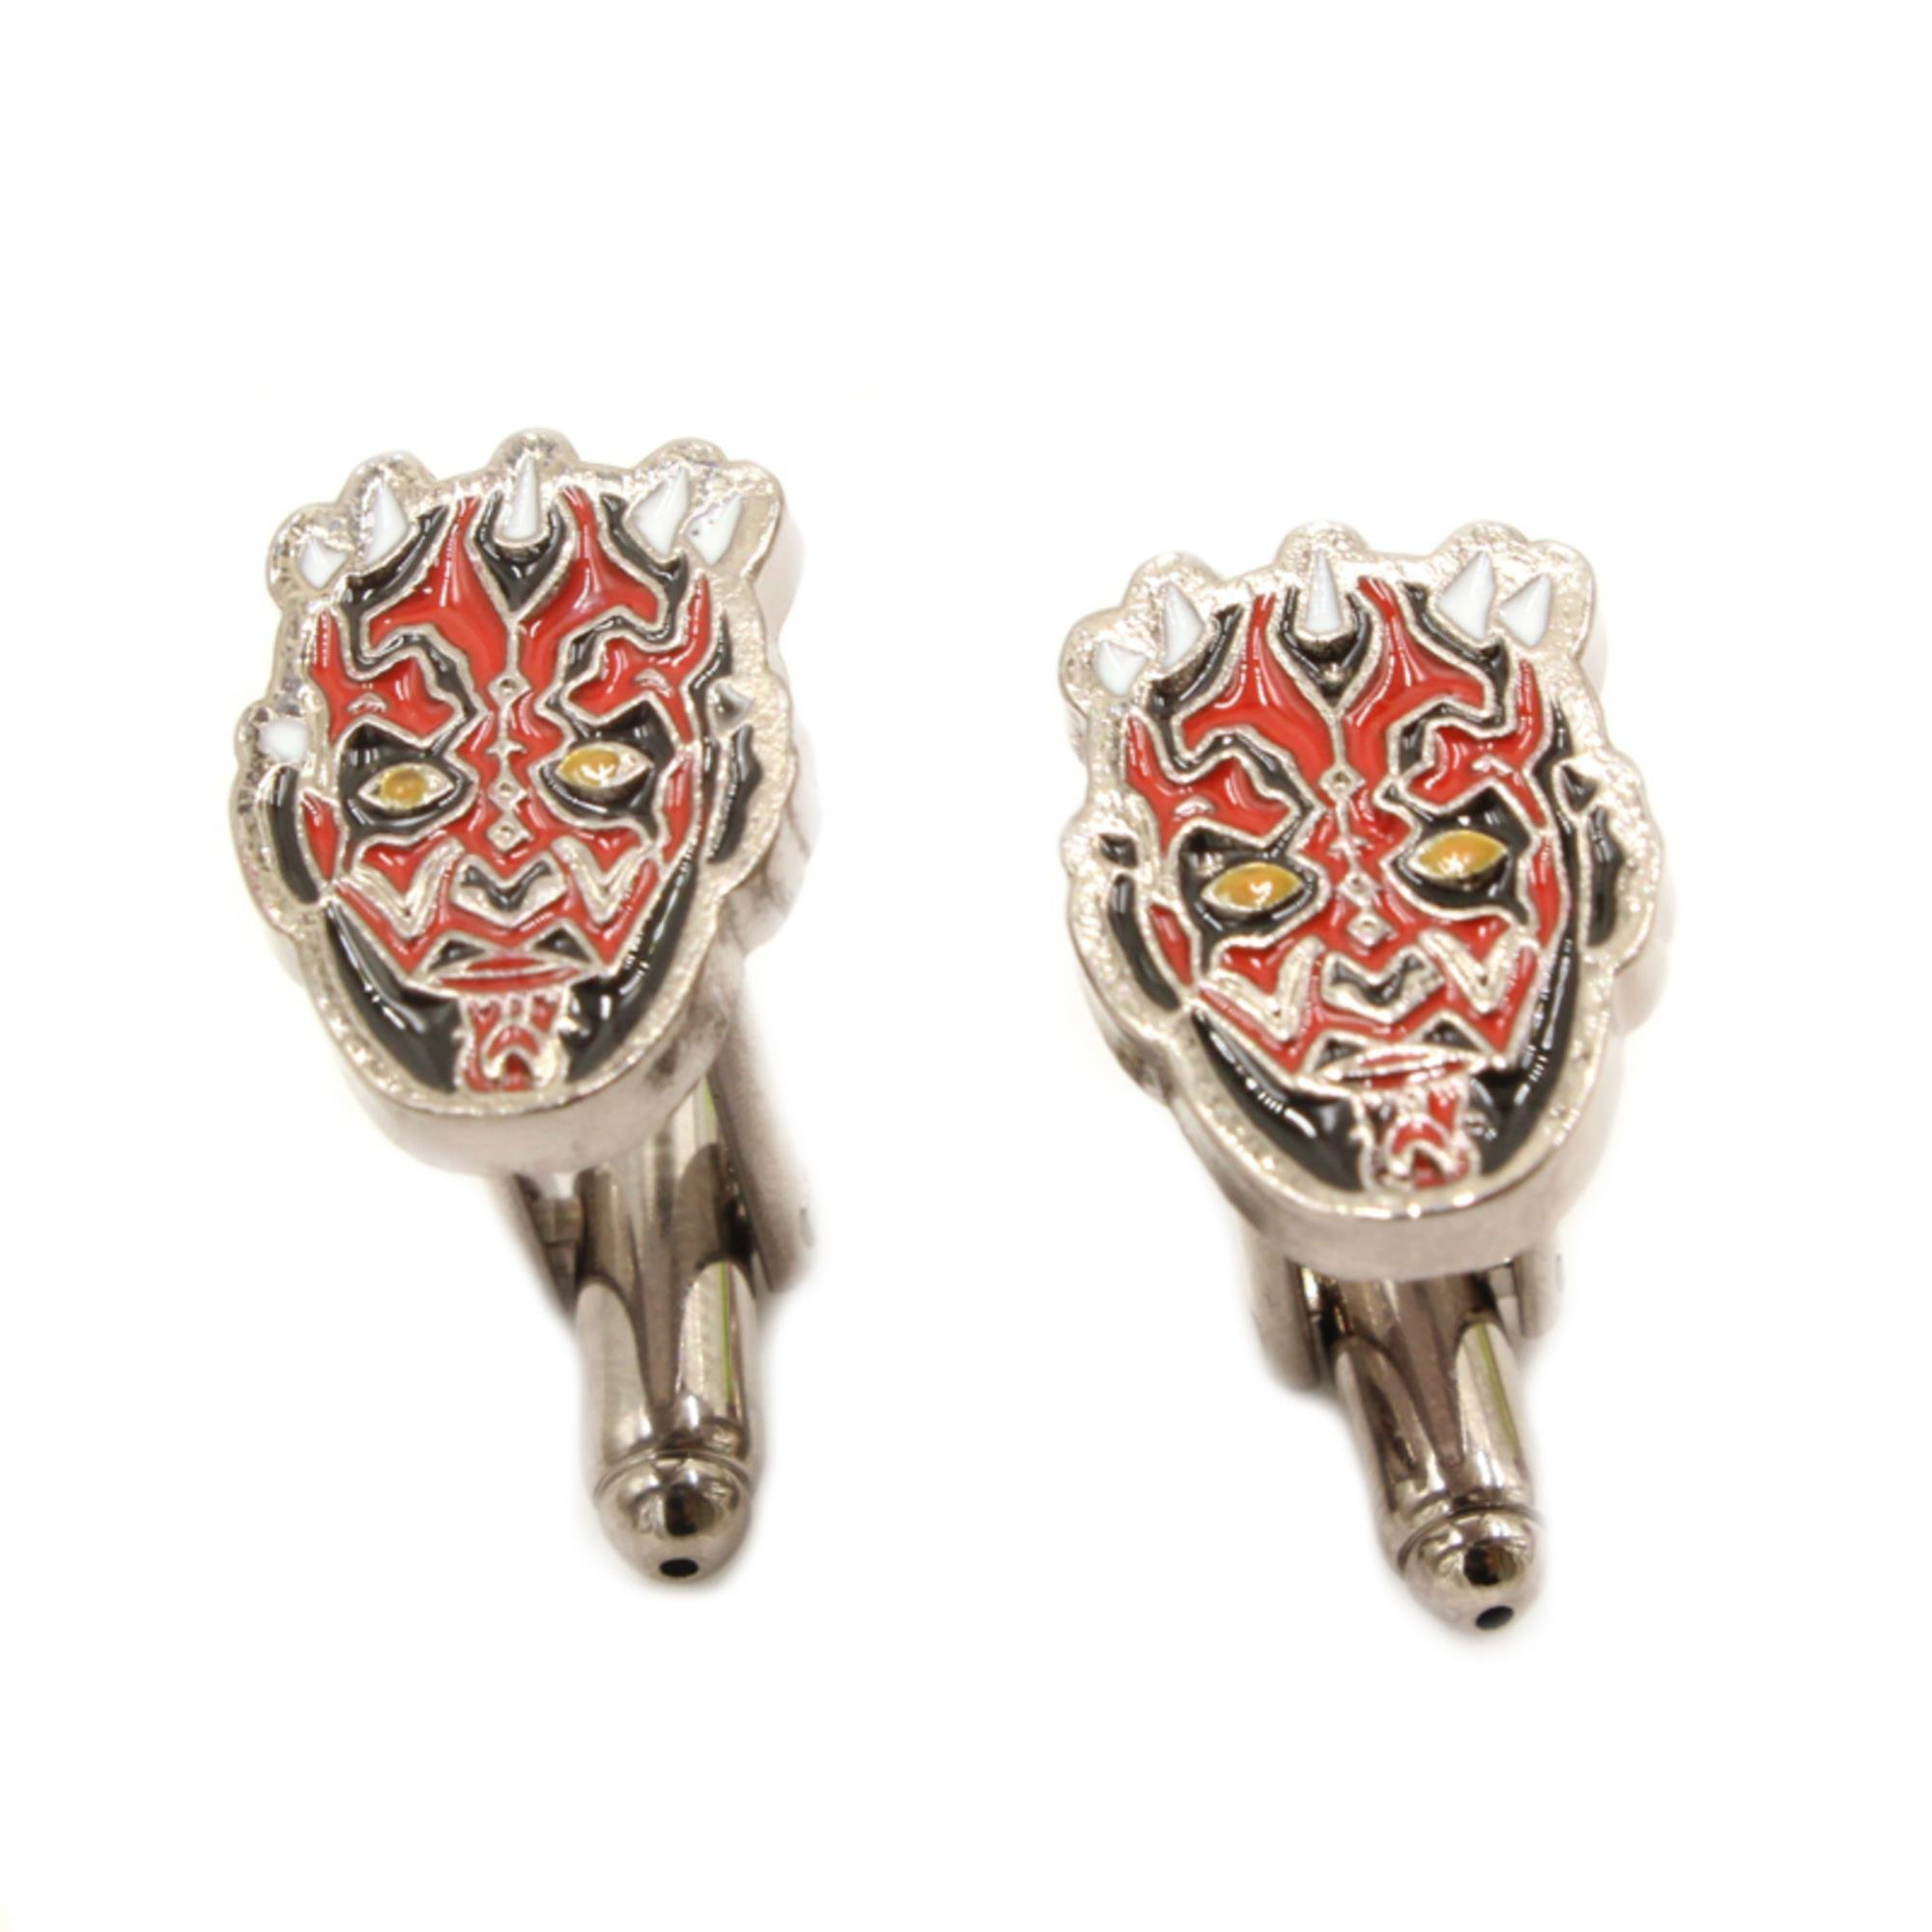 Superheroes Star Wars Darth Maul Sith Imperial Cufflinks